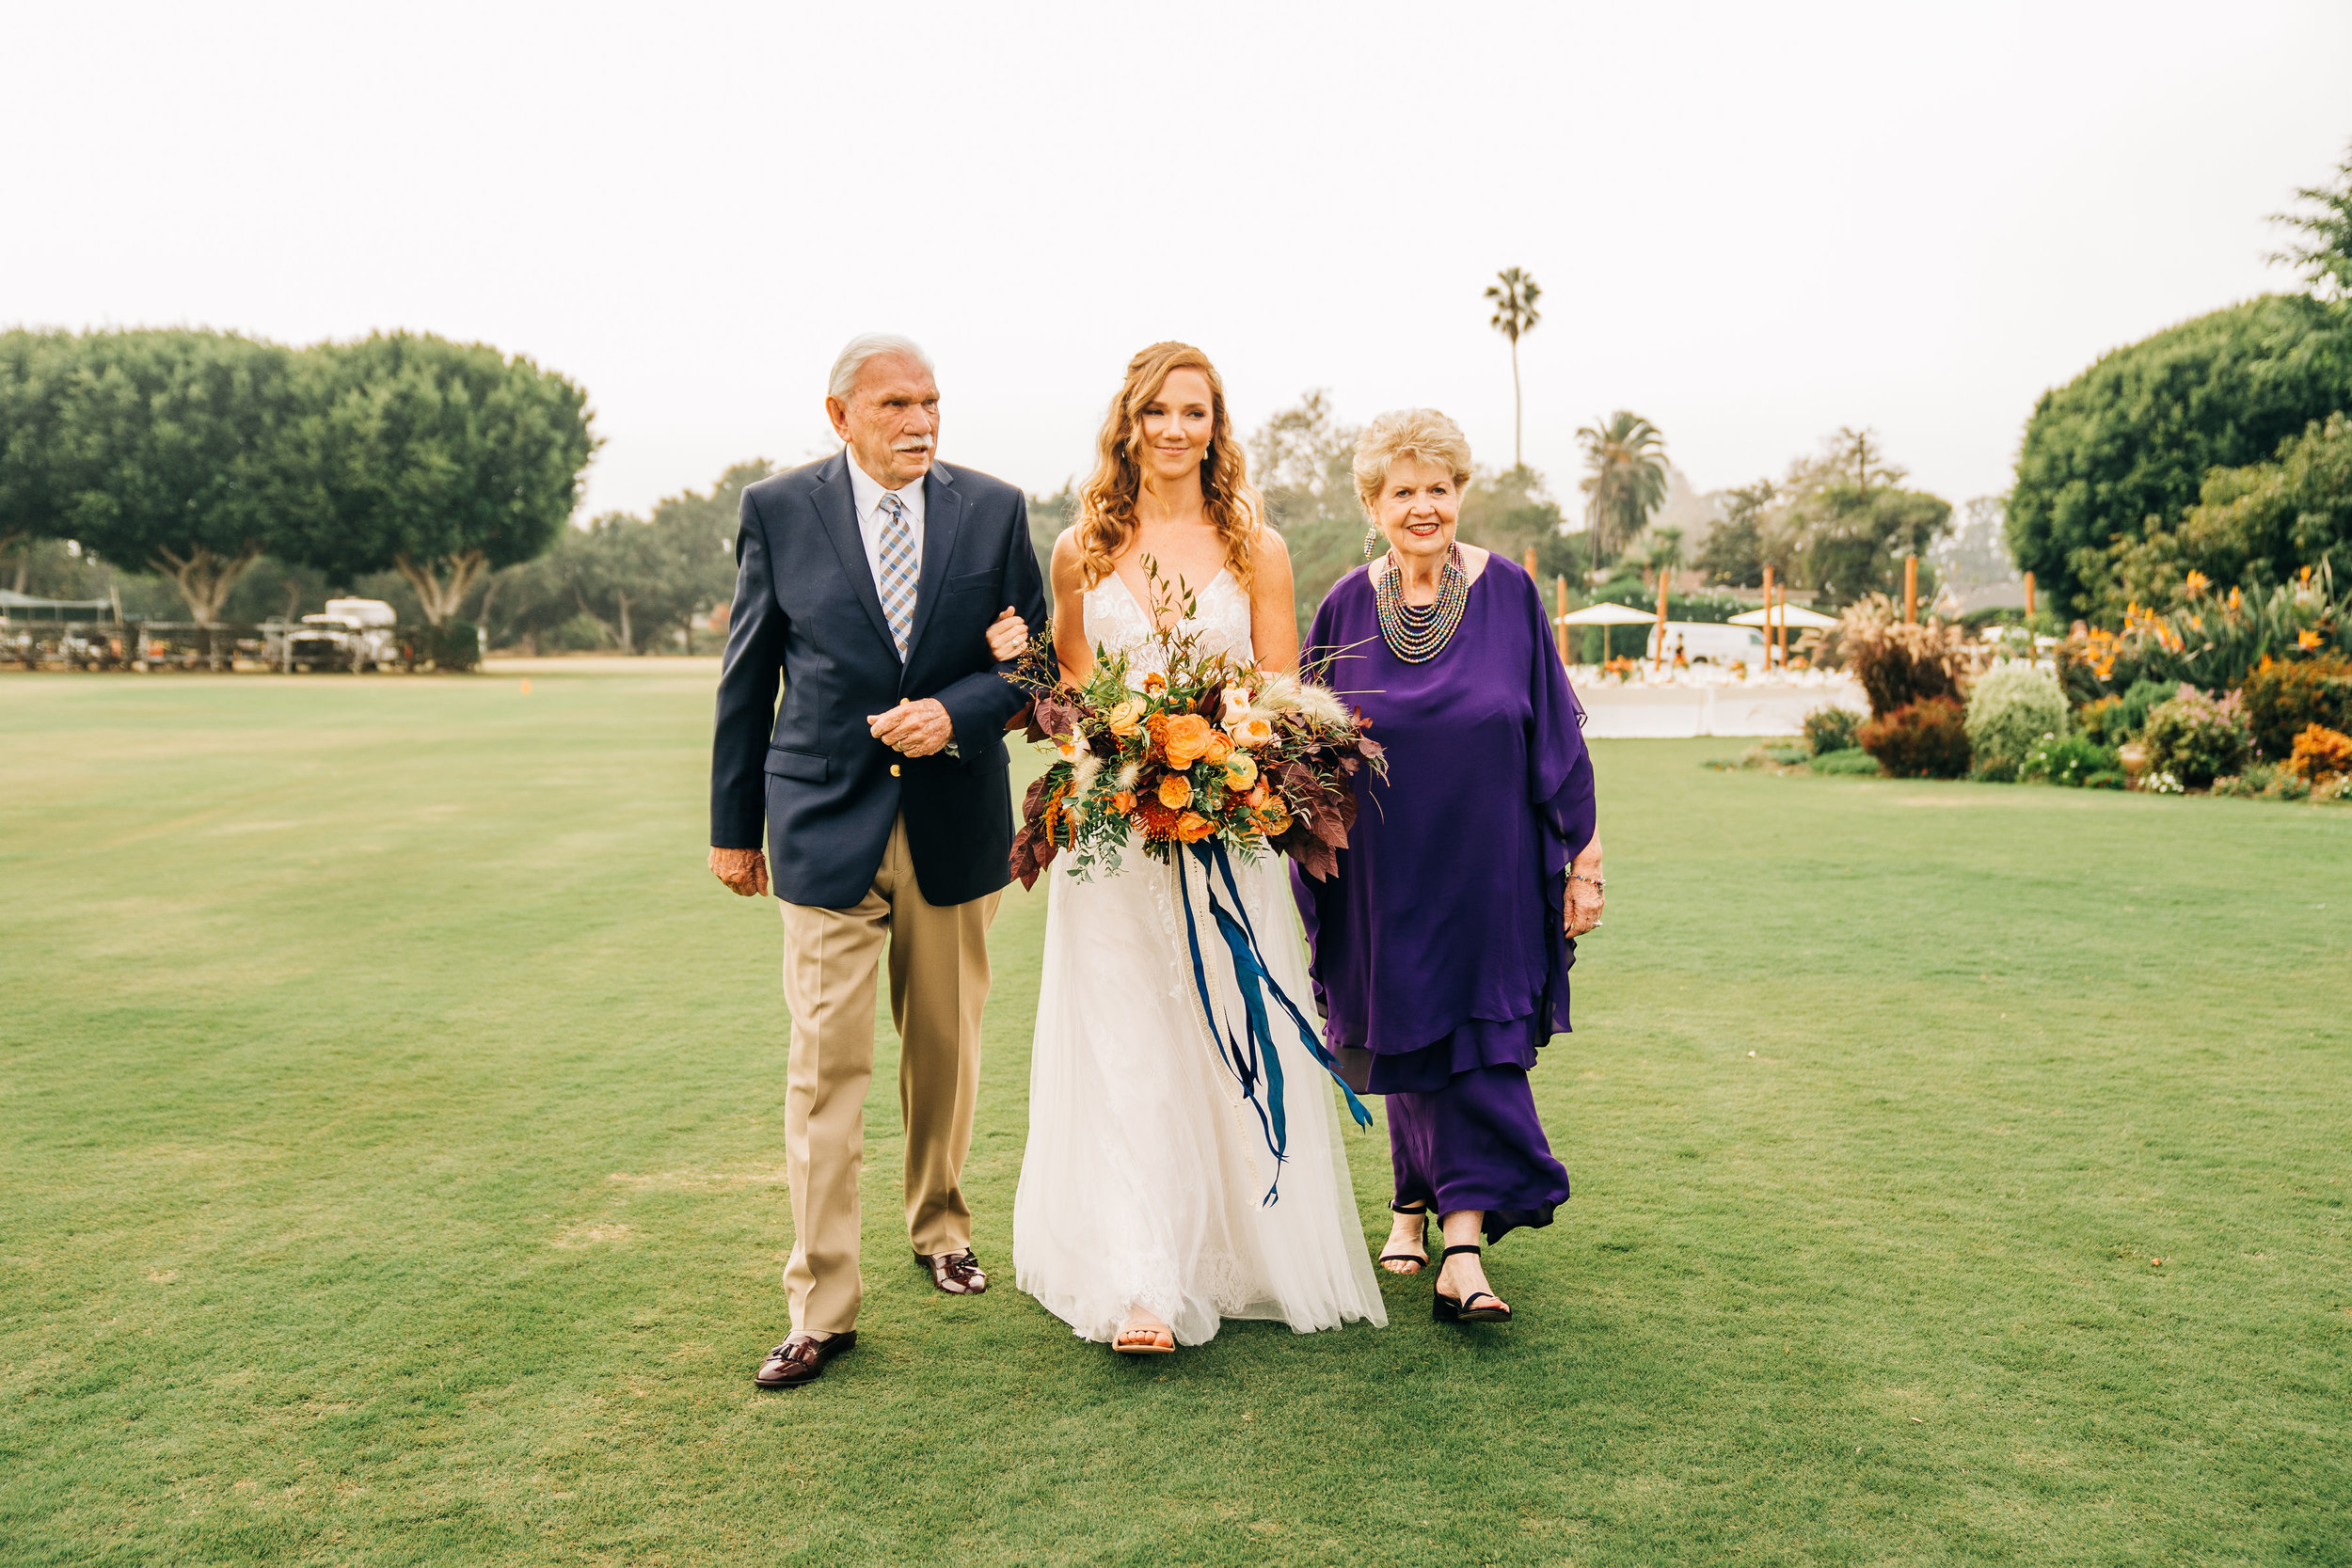 allie-shupe-tyler-wiggins-wedding-santa-barbara 083.jpg